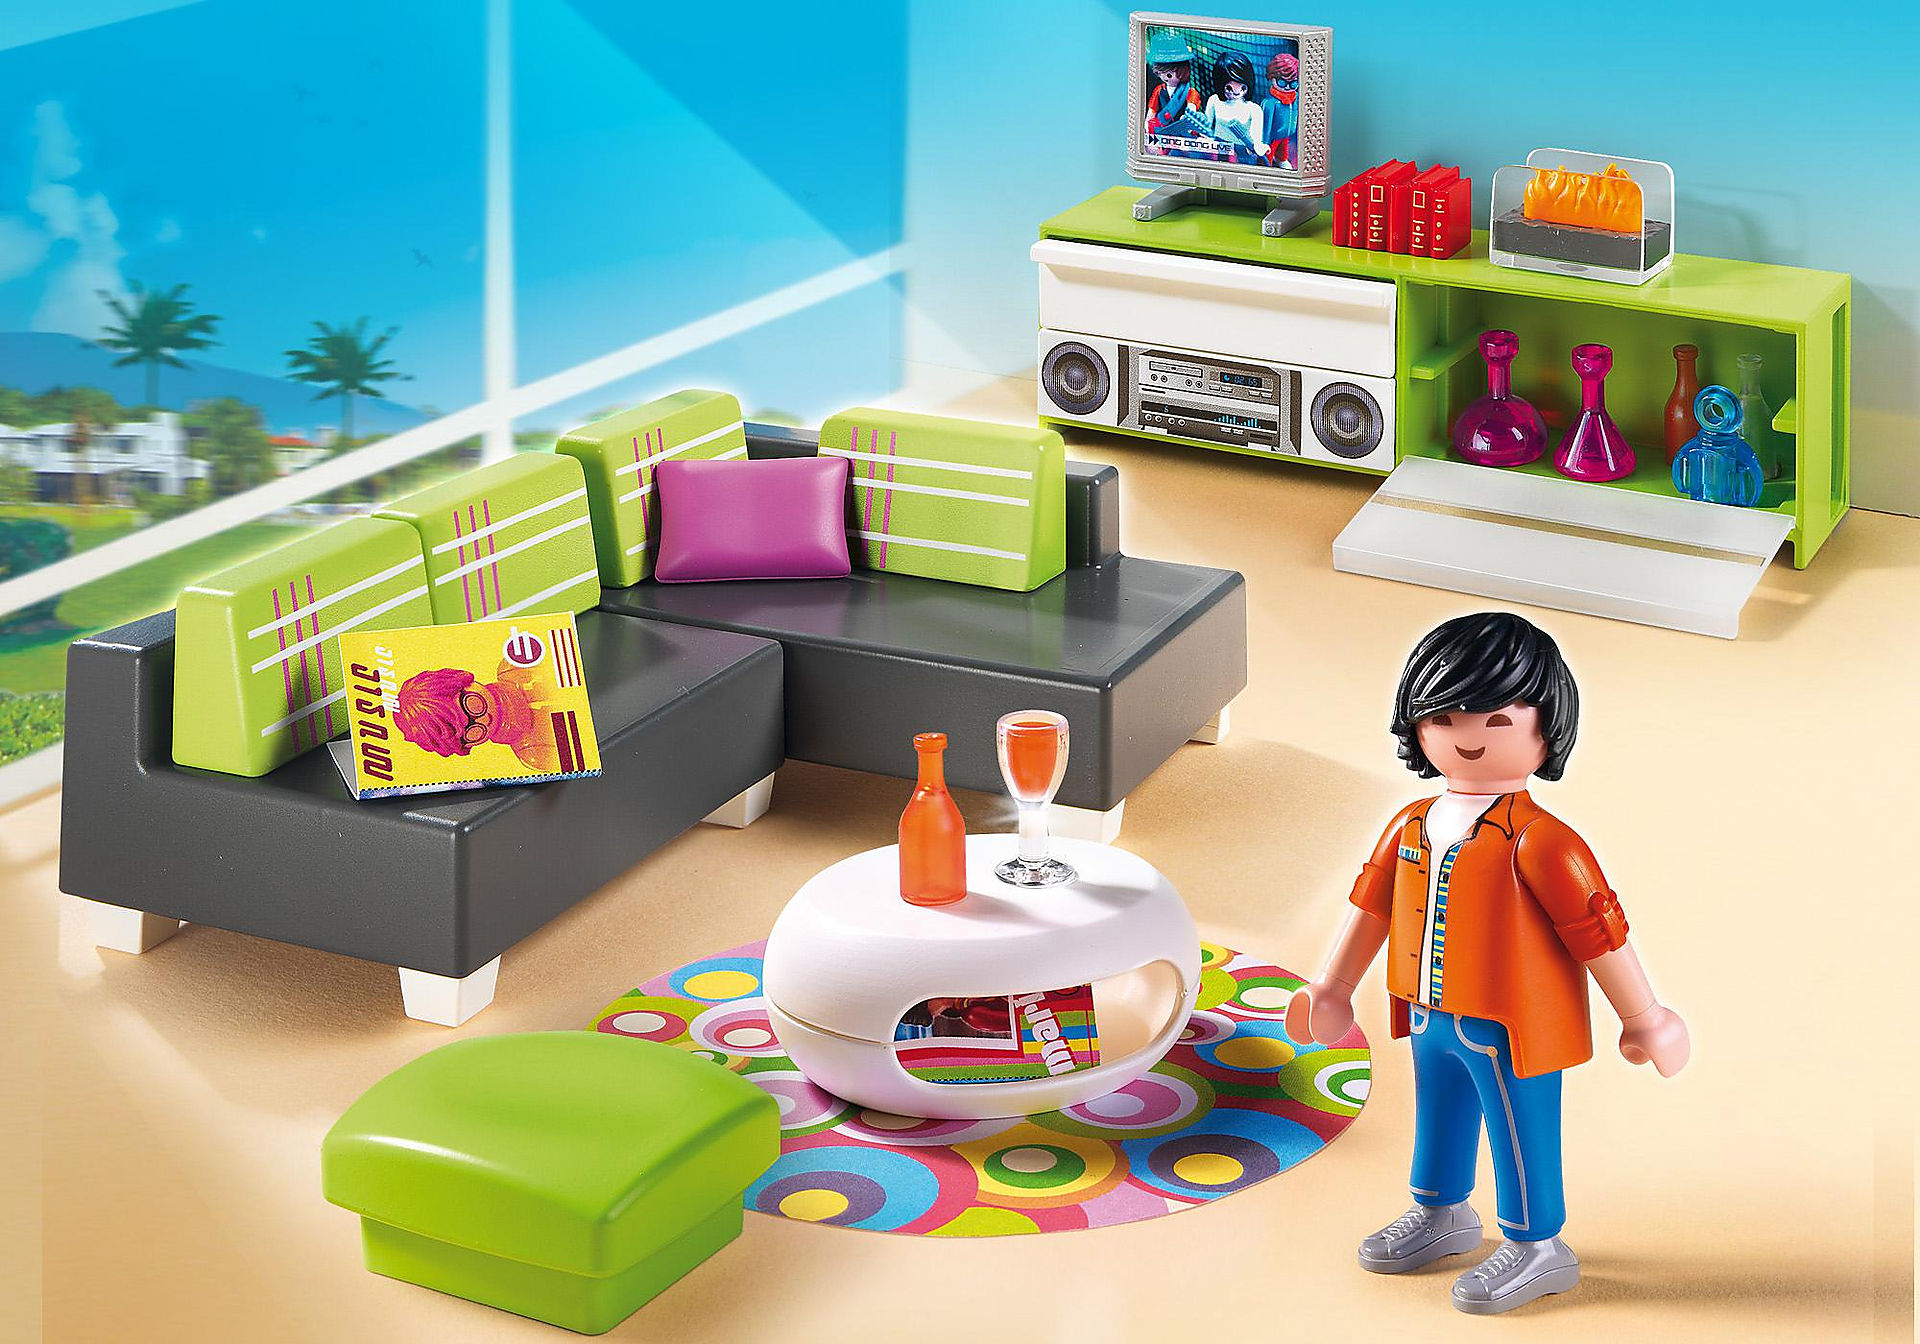 http://media.playmobil.com/i/playmobil/5584_product_detail/Wohnzimmer